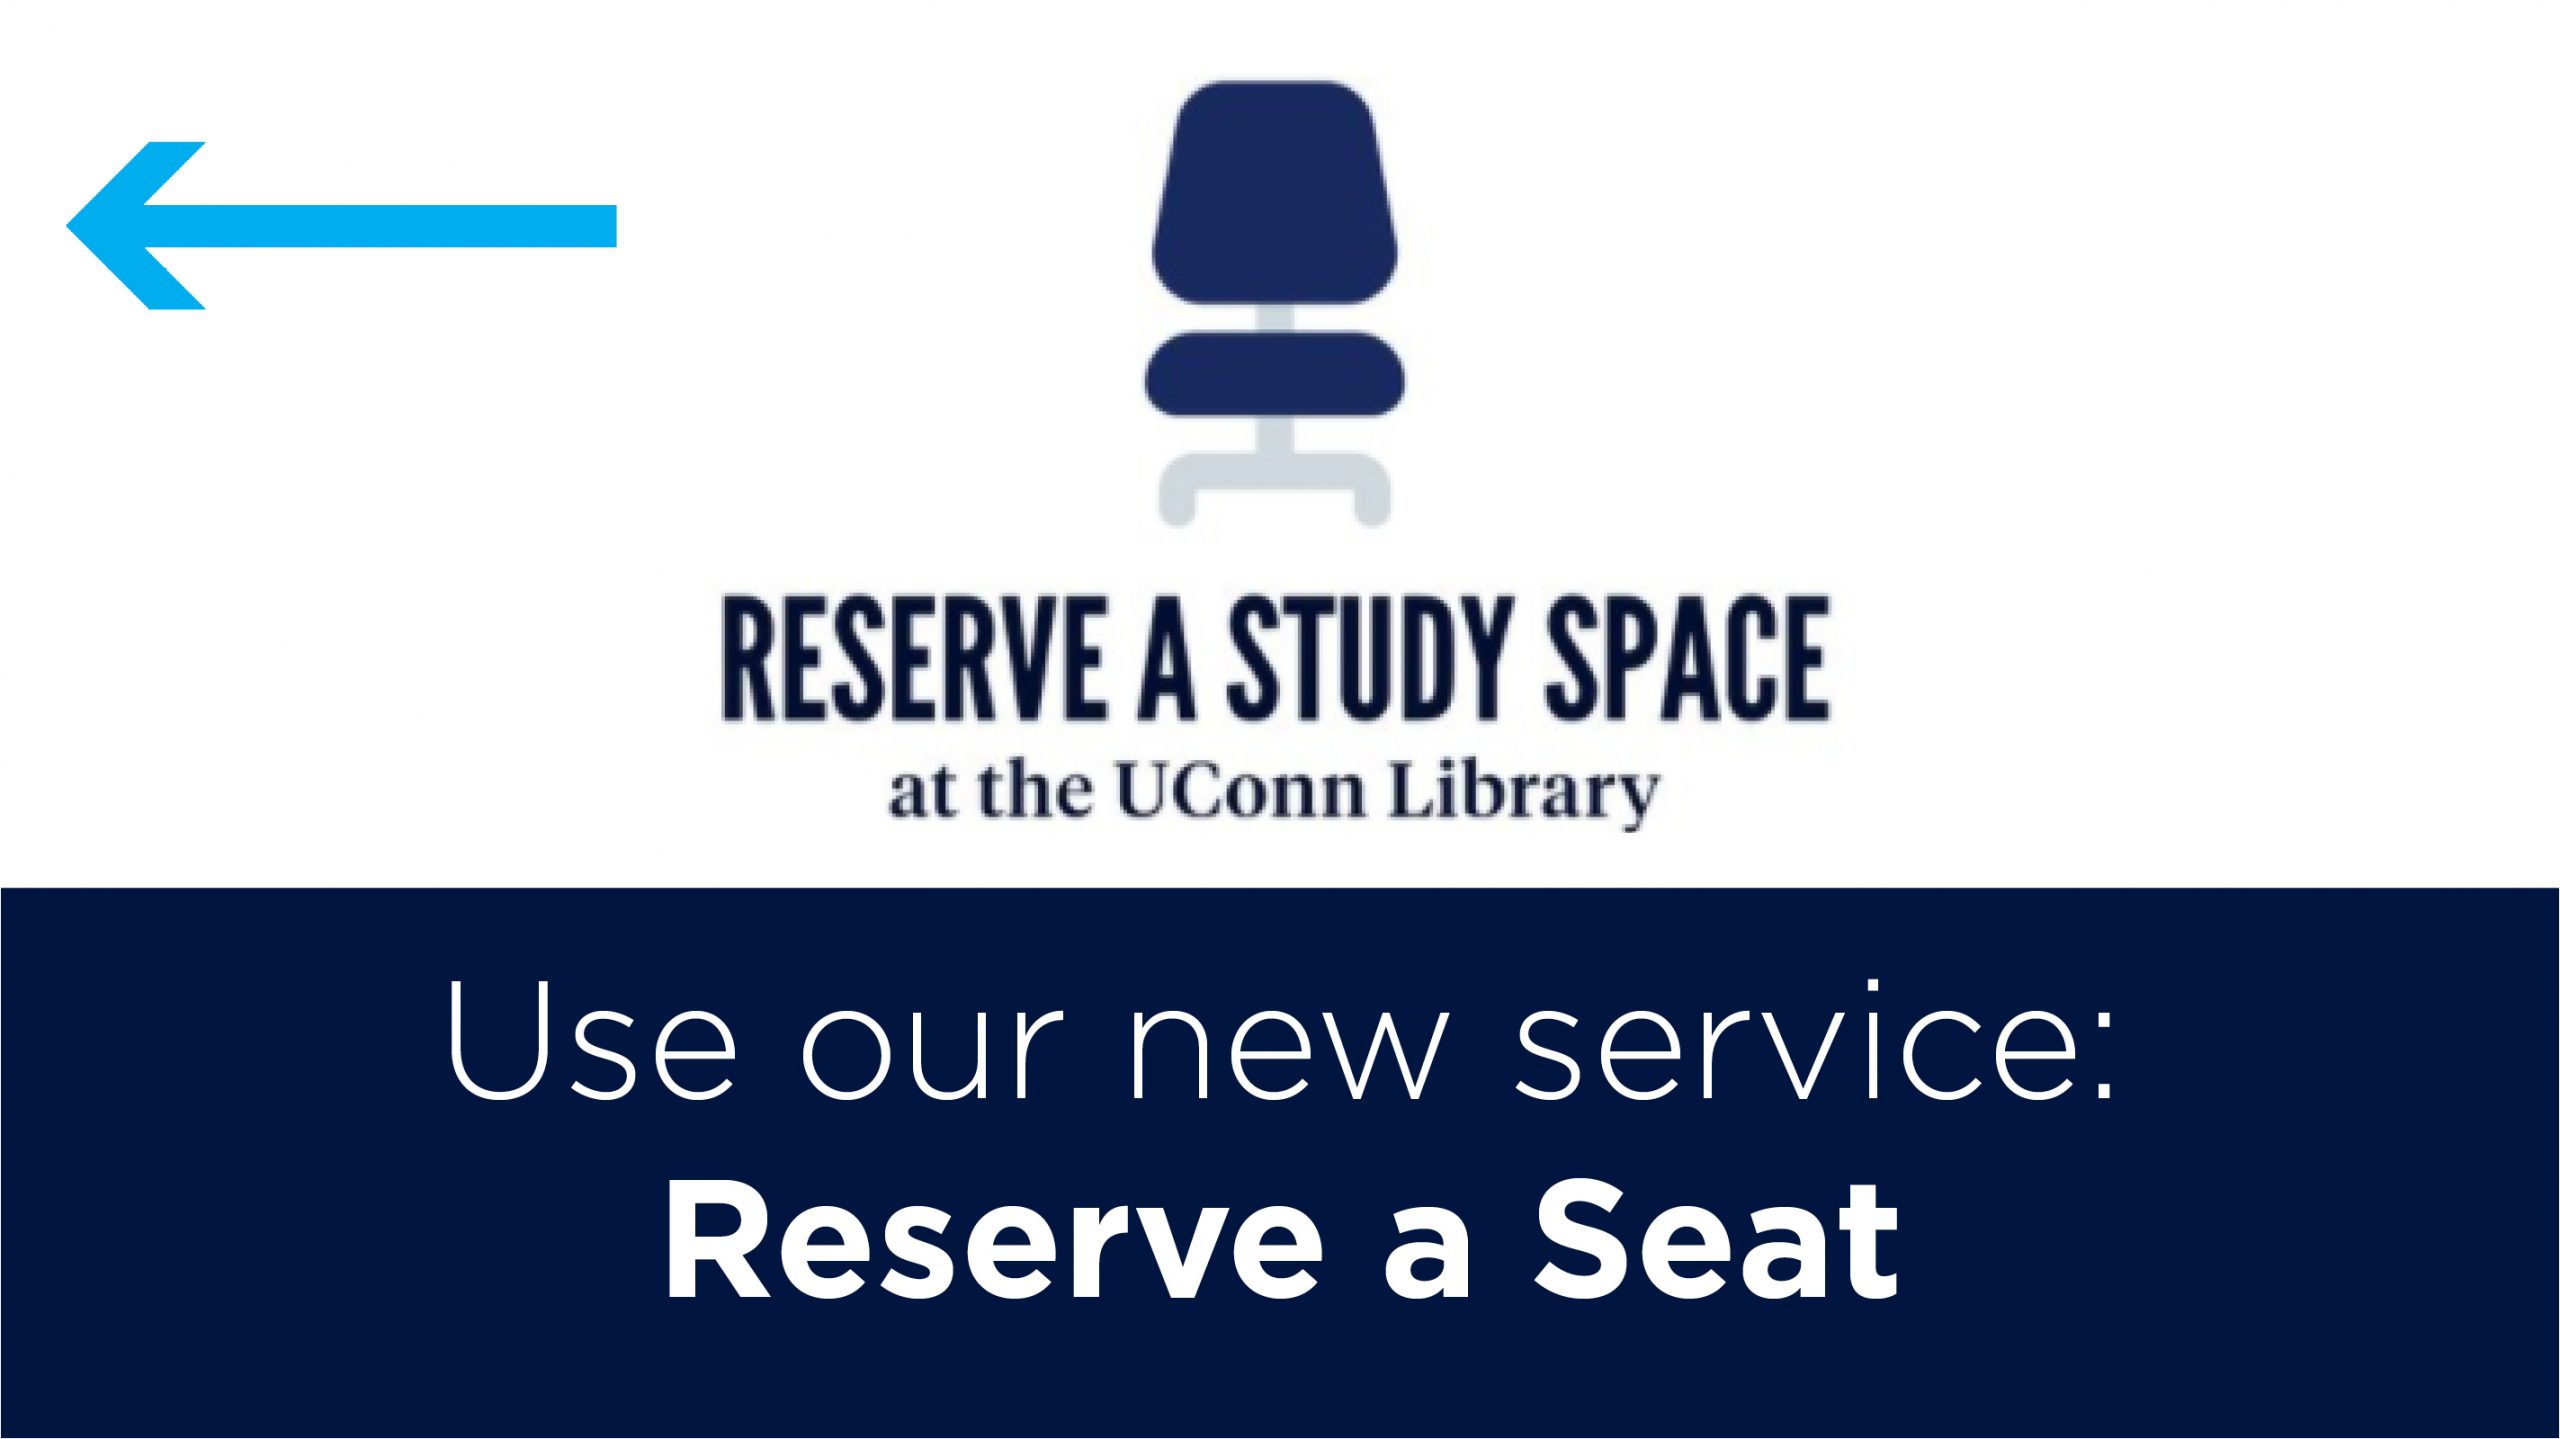 Reserve a study space at UConn Library. Use our new service: Reserve a Seat